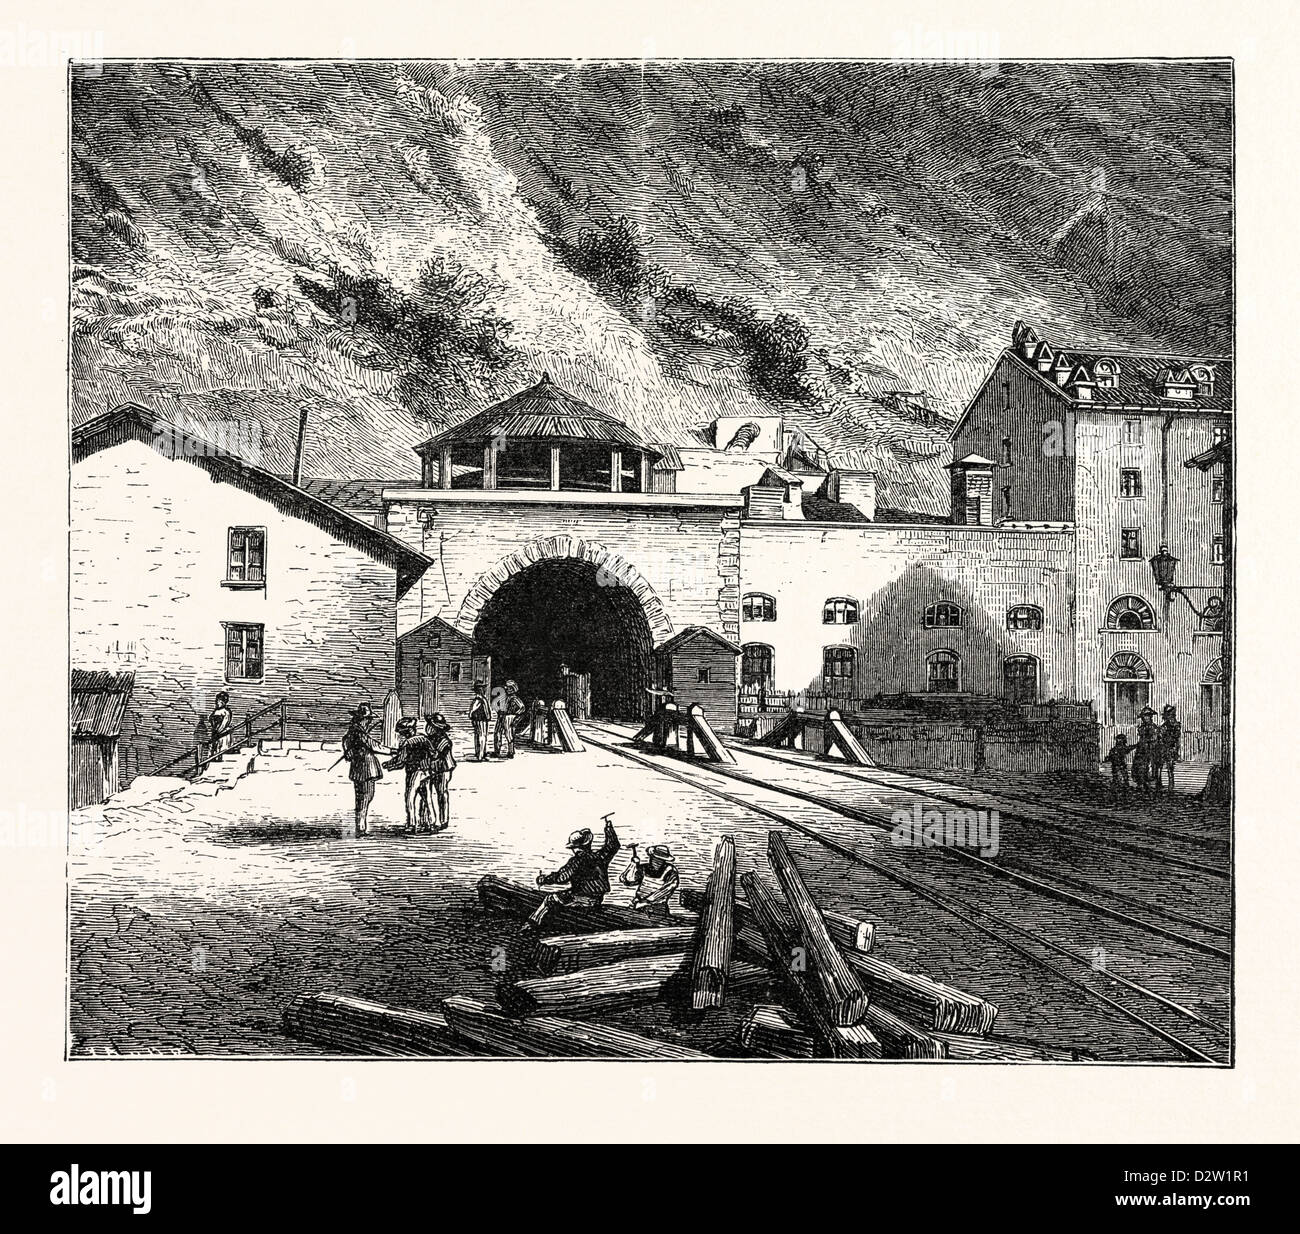 THE MONT CENIS TUNNEL FROM THE ITALIAN SIDE. - Stock Image